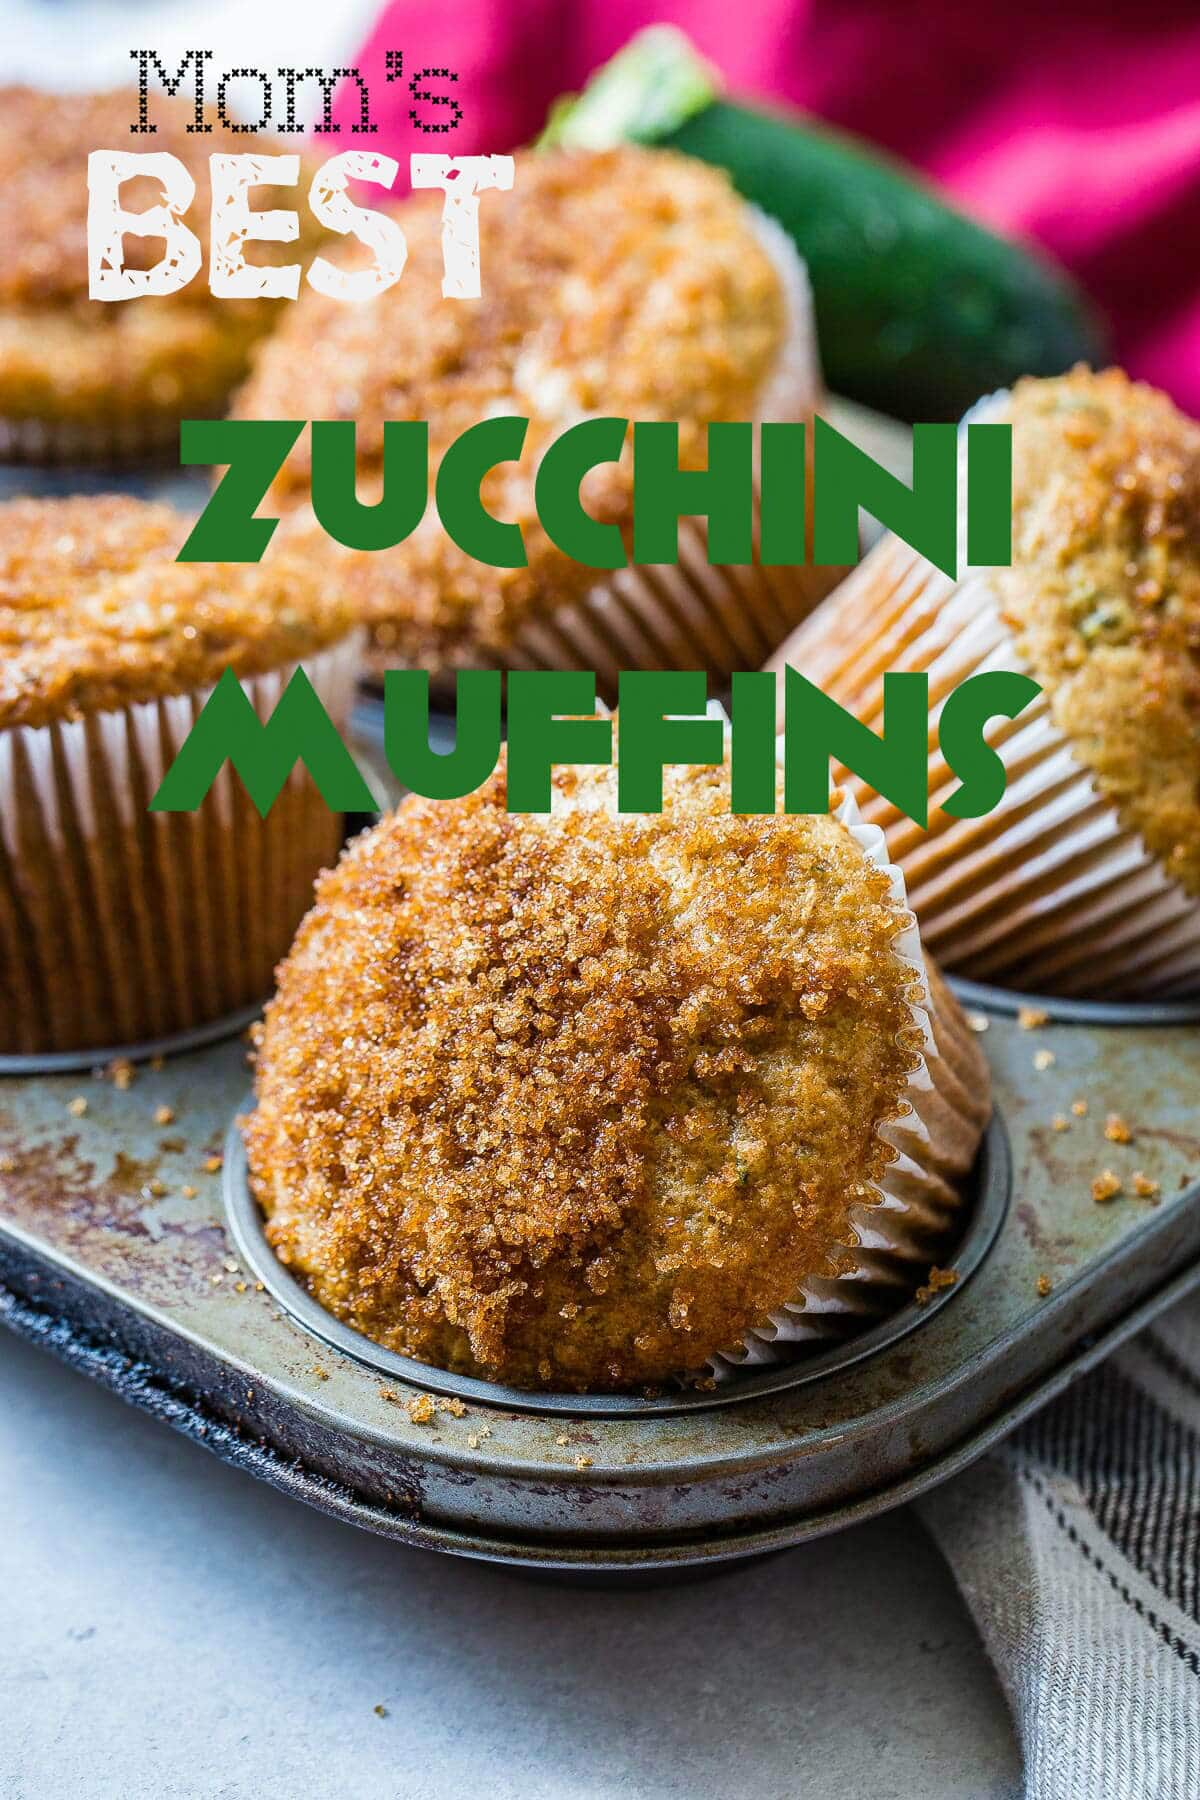 Mom's best zucchini muffins only need a few ingredients but the sour cream is the most important part. Looking for recipe ideas using zucchini? Make these muffins!